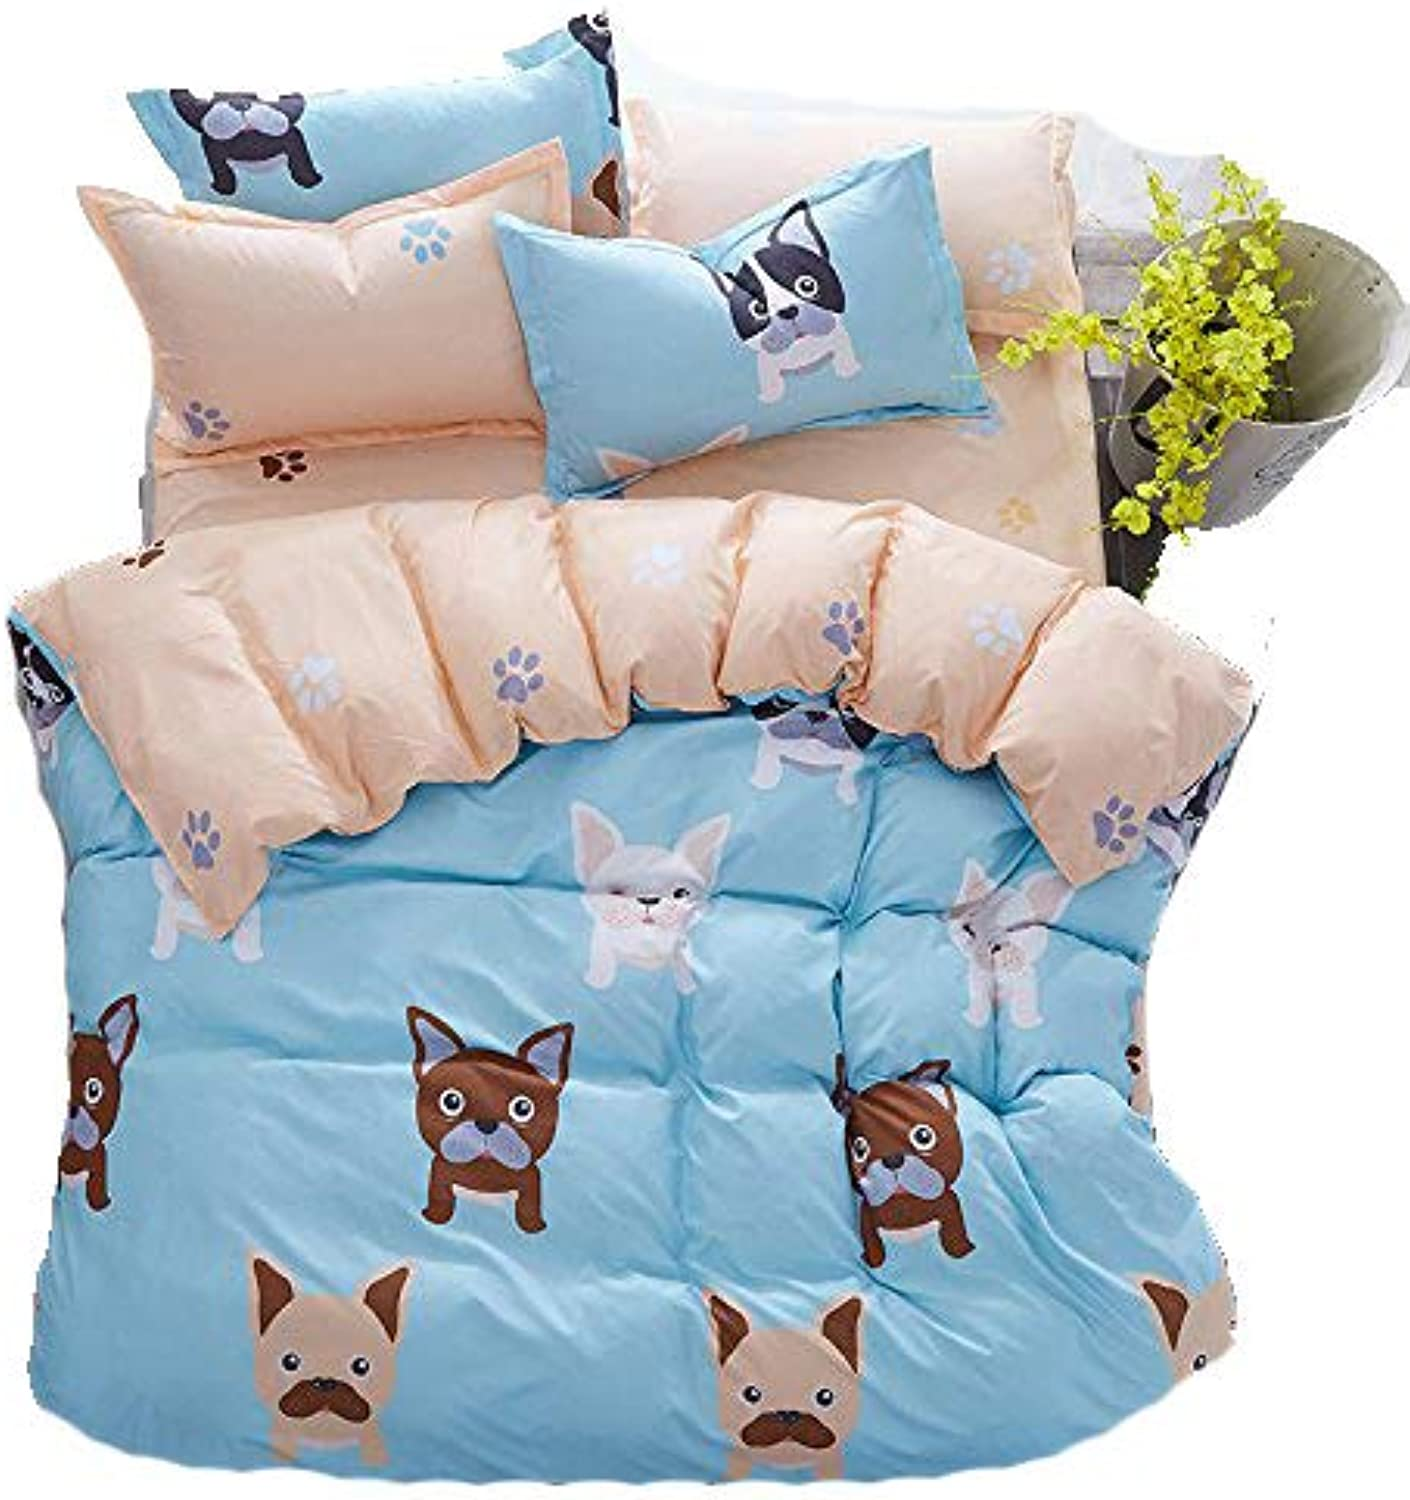 4pcs Bedding Sets Bedroom Set with 1 BedSheet 1 Duvet Cover 2 Pillowcase with Twin Full Queen Size Best Gifts (Full, Cute Dog)